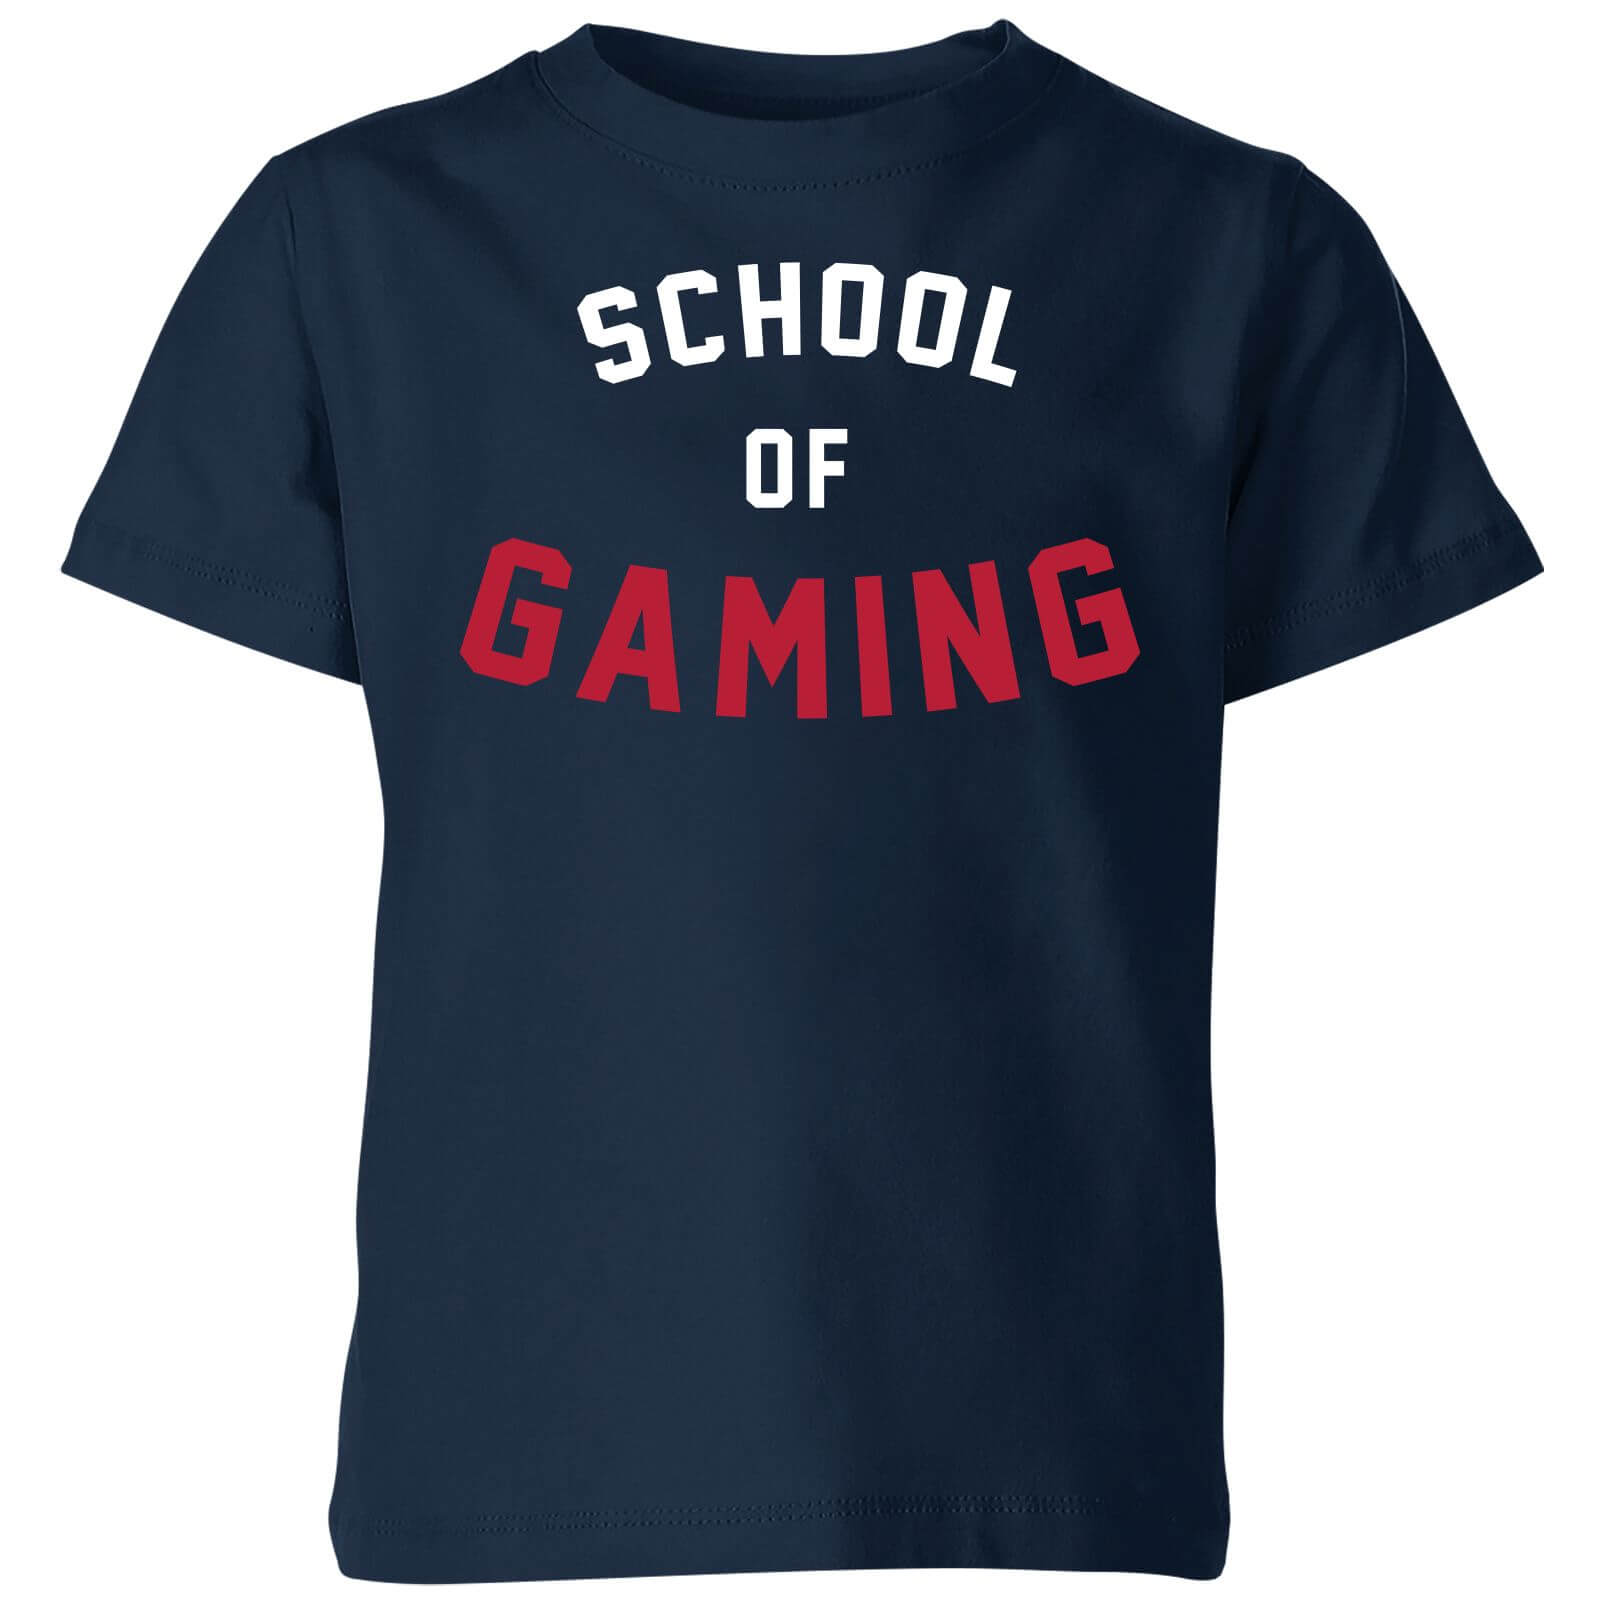 School of Gaming Kids